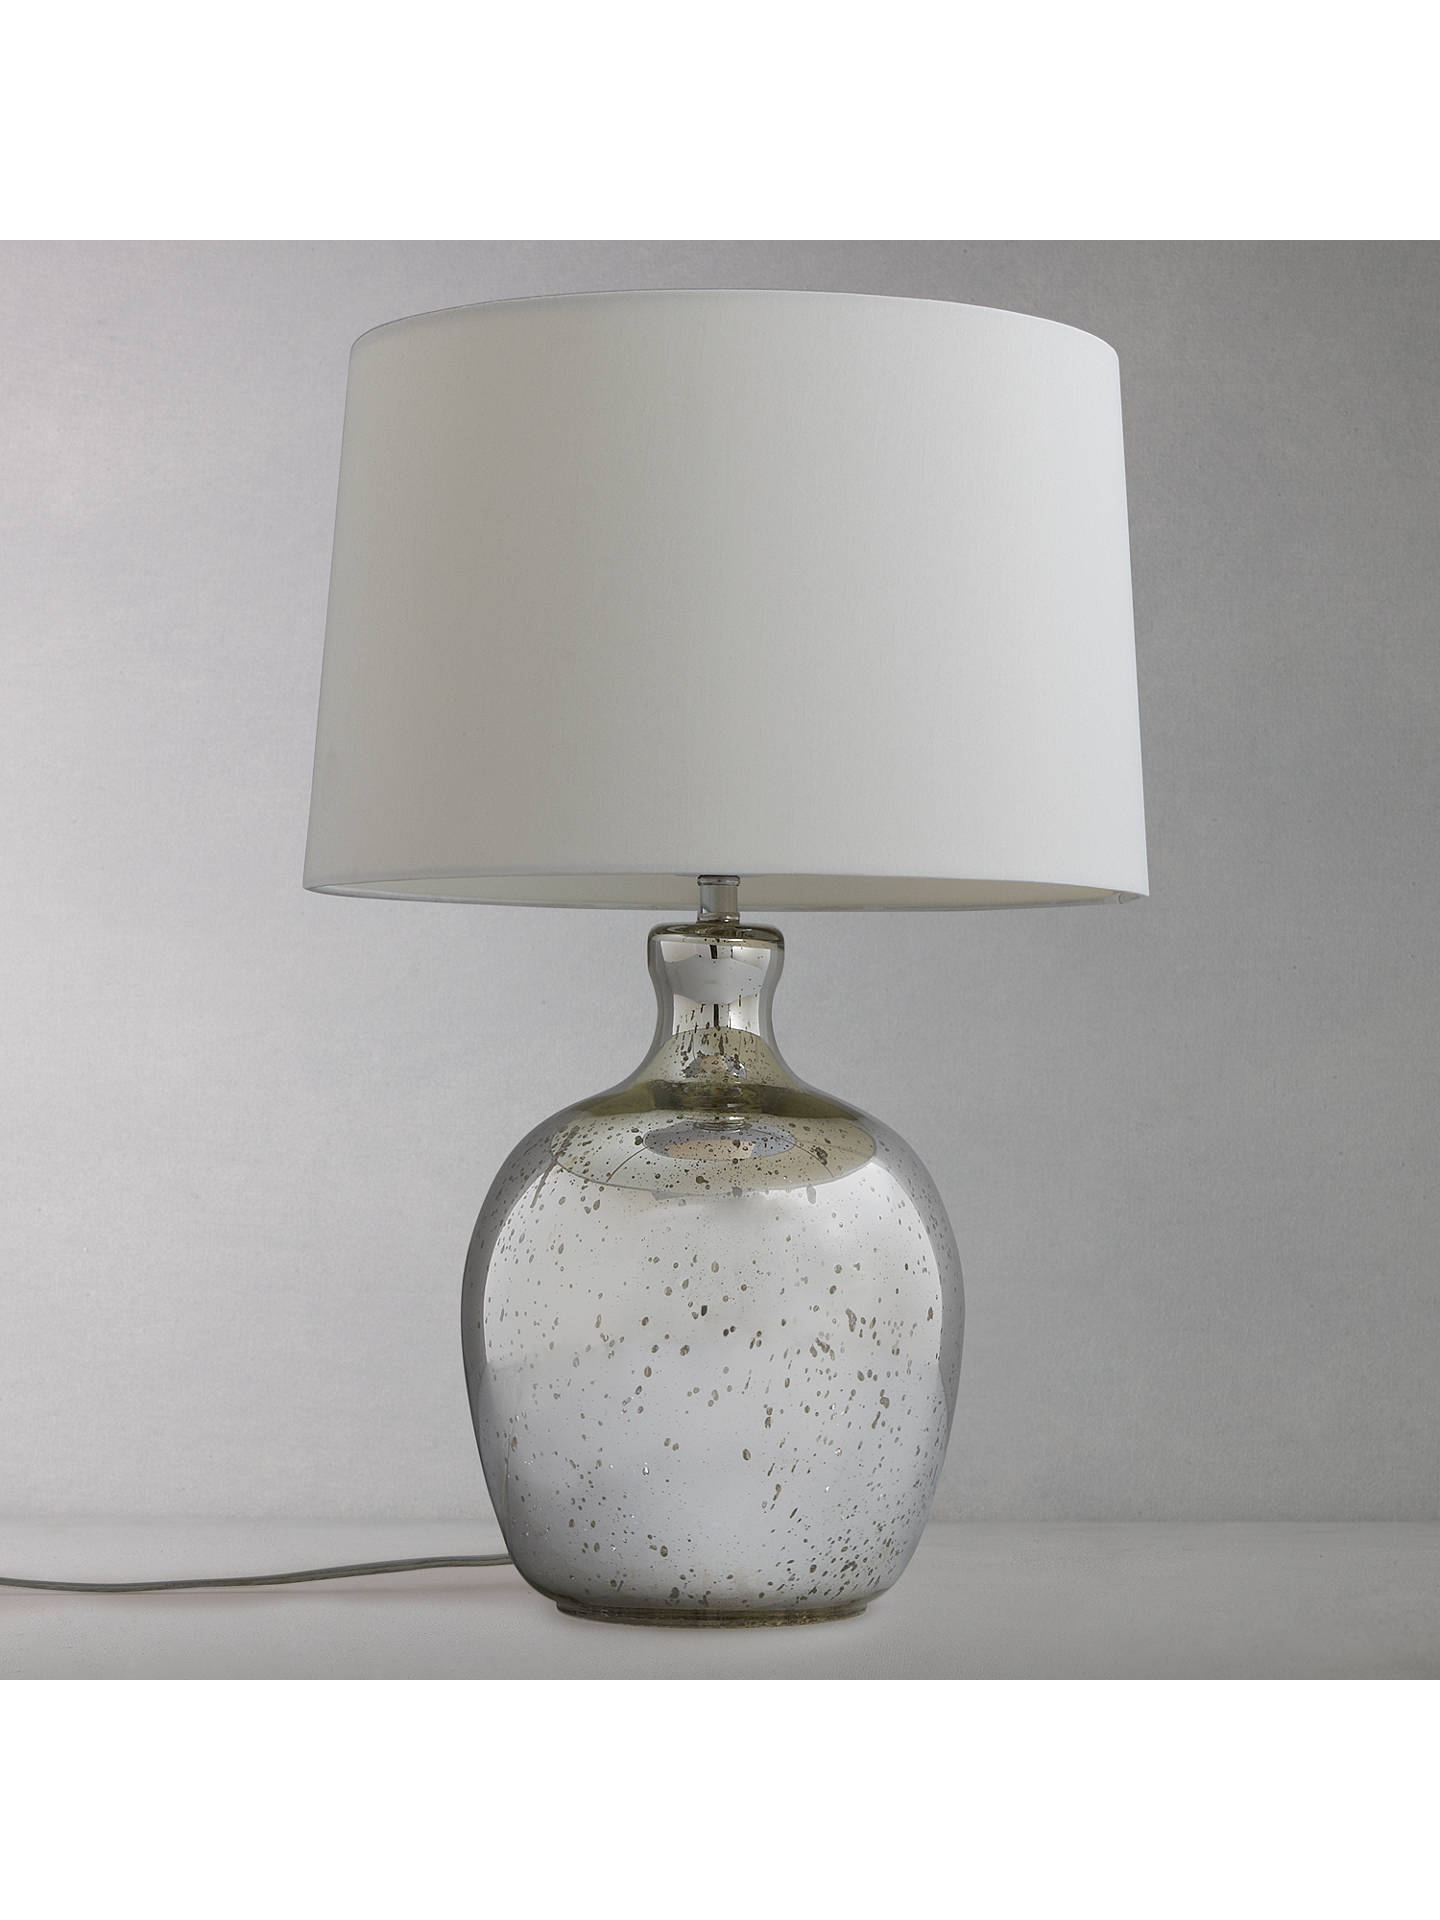 BuyJohn Lewis & Partners Tabitha Distressed Mirror Table Lamp Online at johnlewis.com